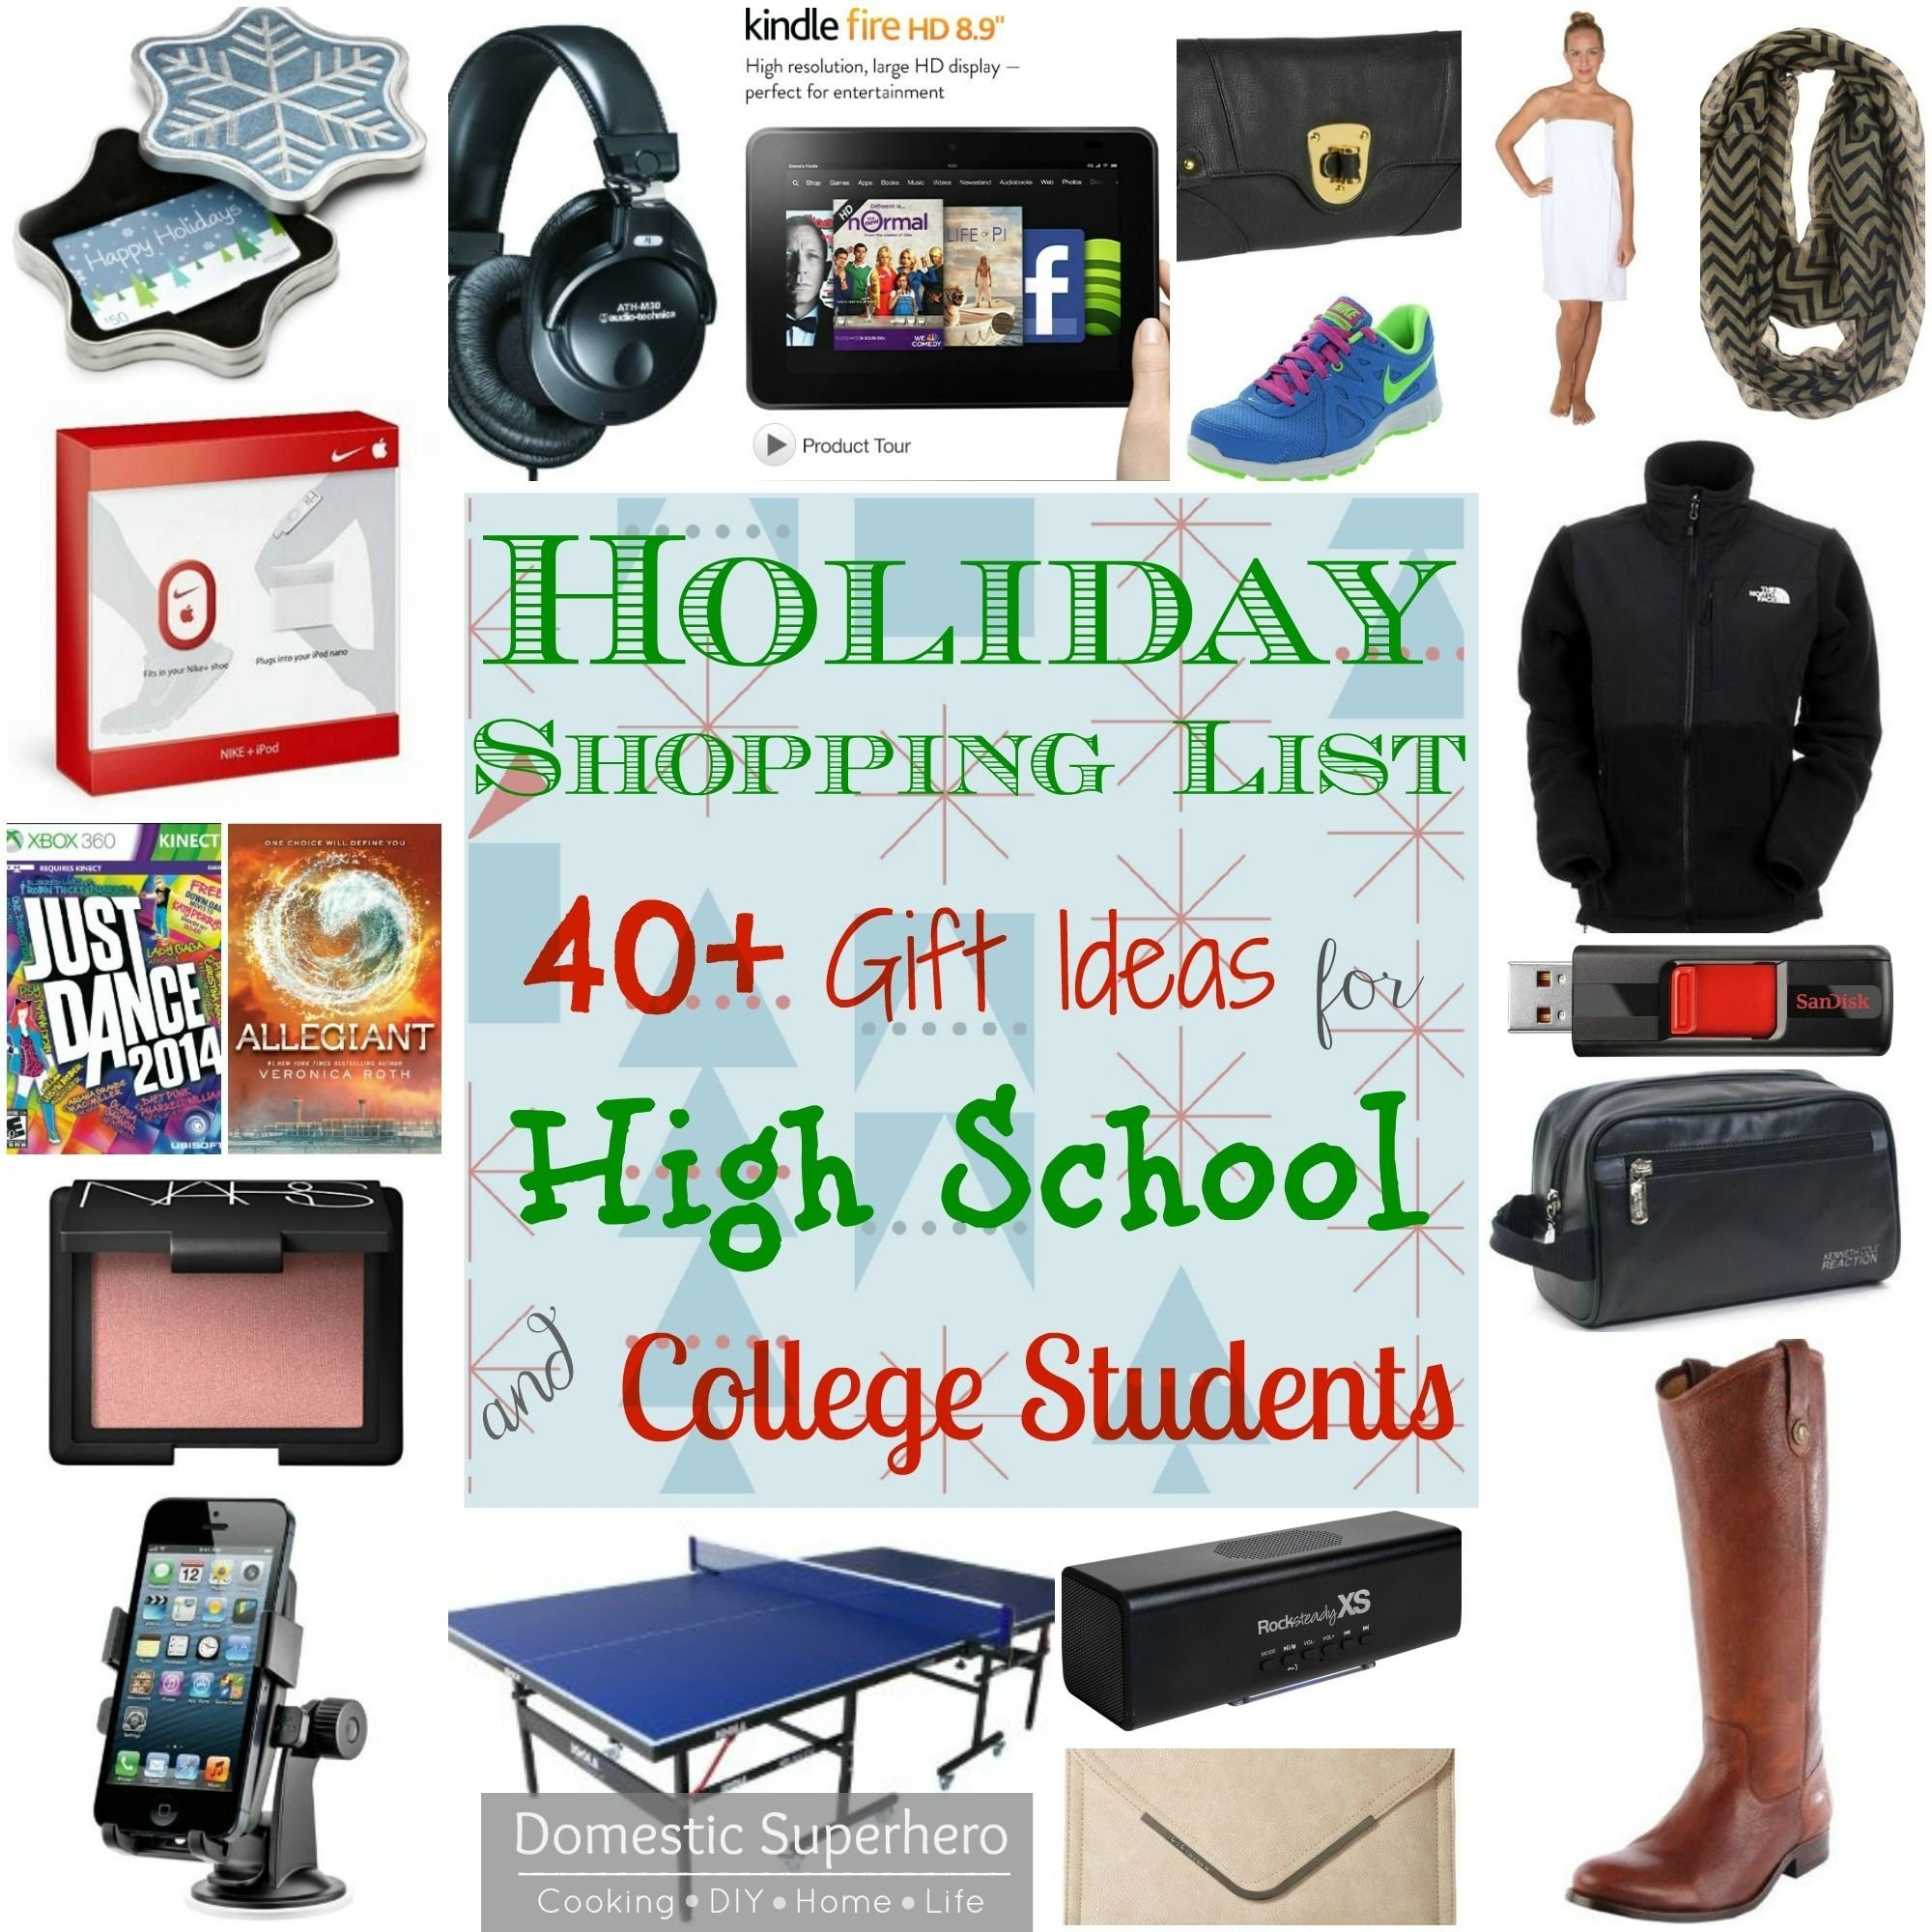 holiday shopping list: 40+ gift ideas for high school and college